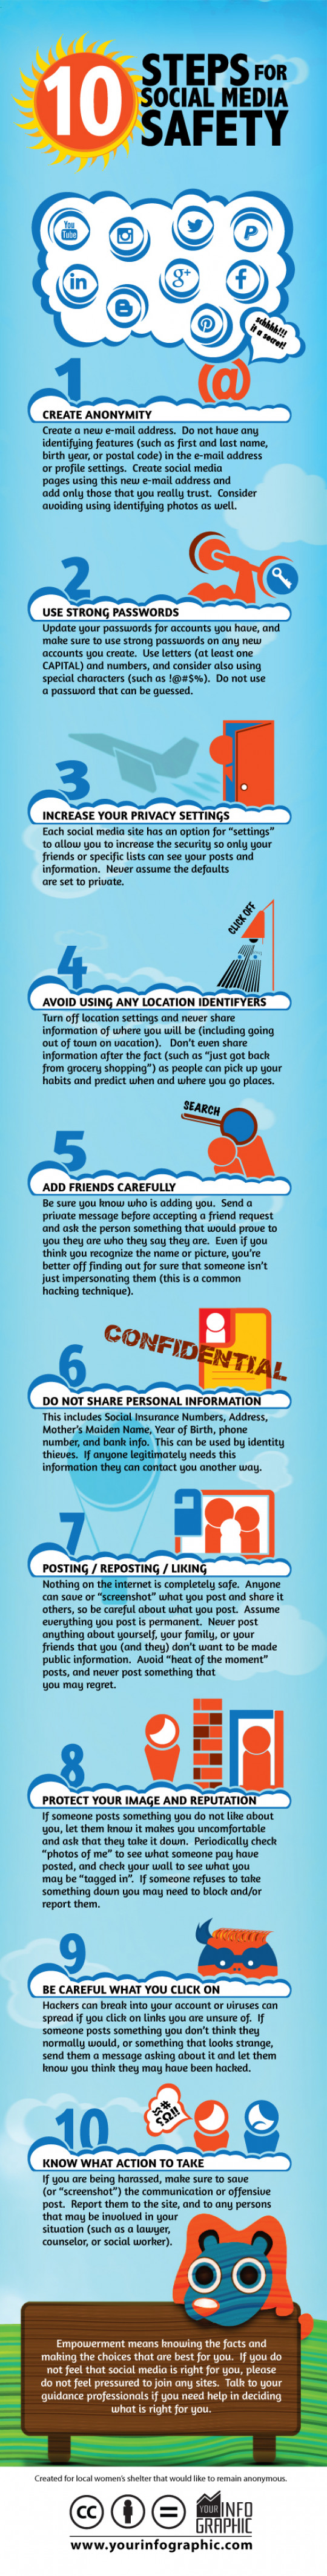 10 Steps for Social Media Safety